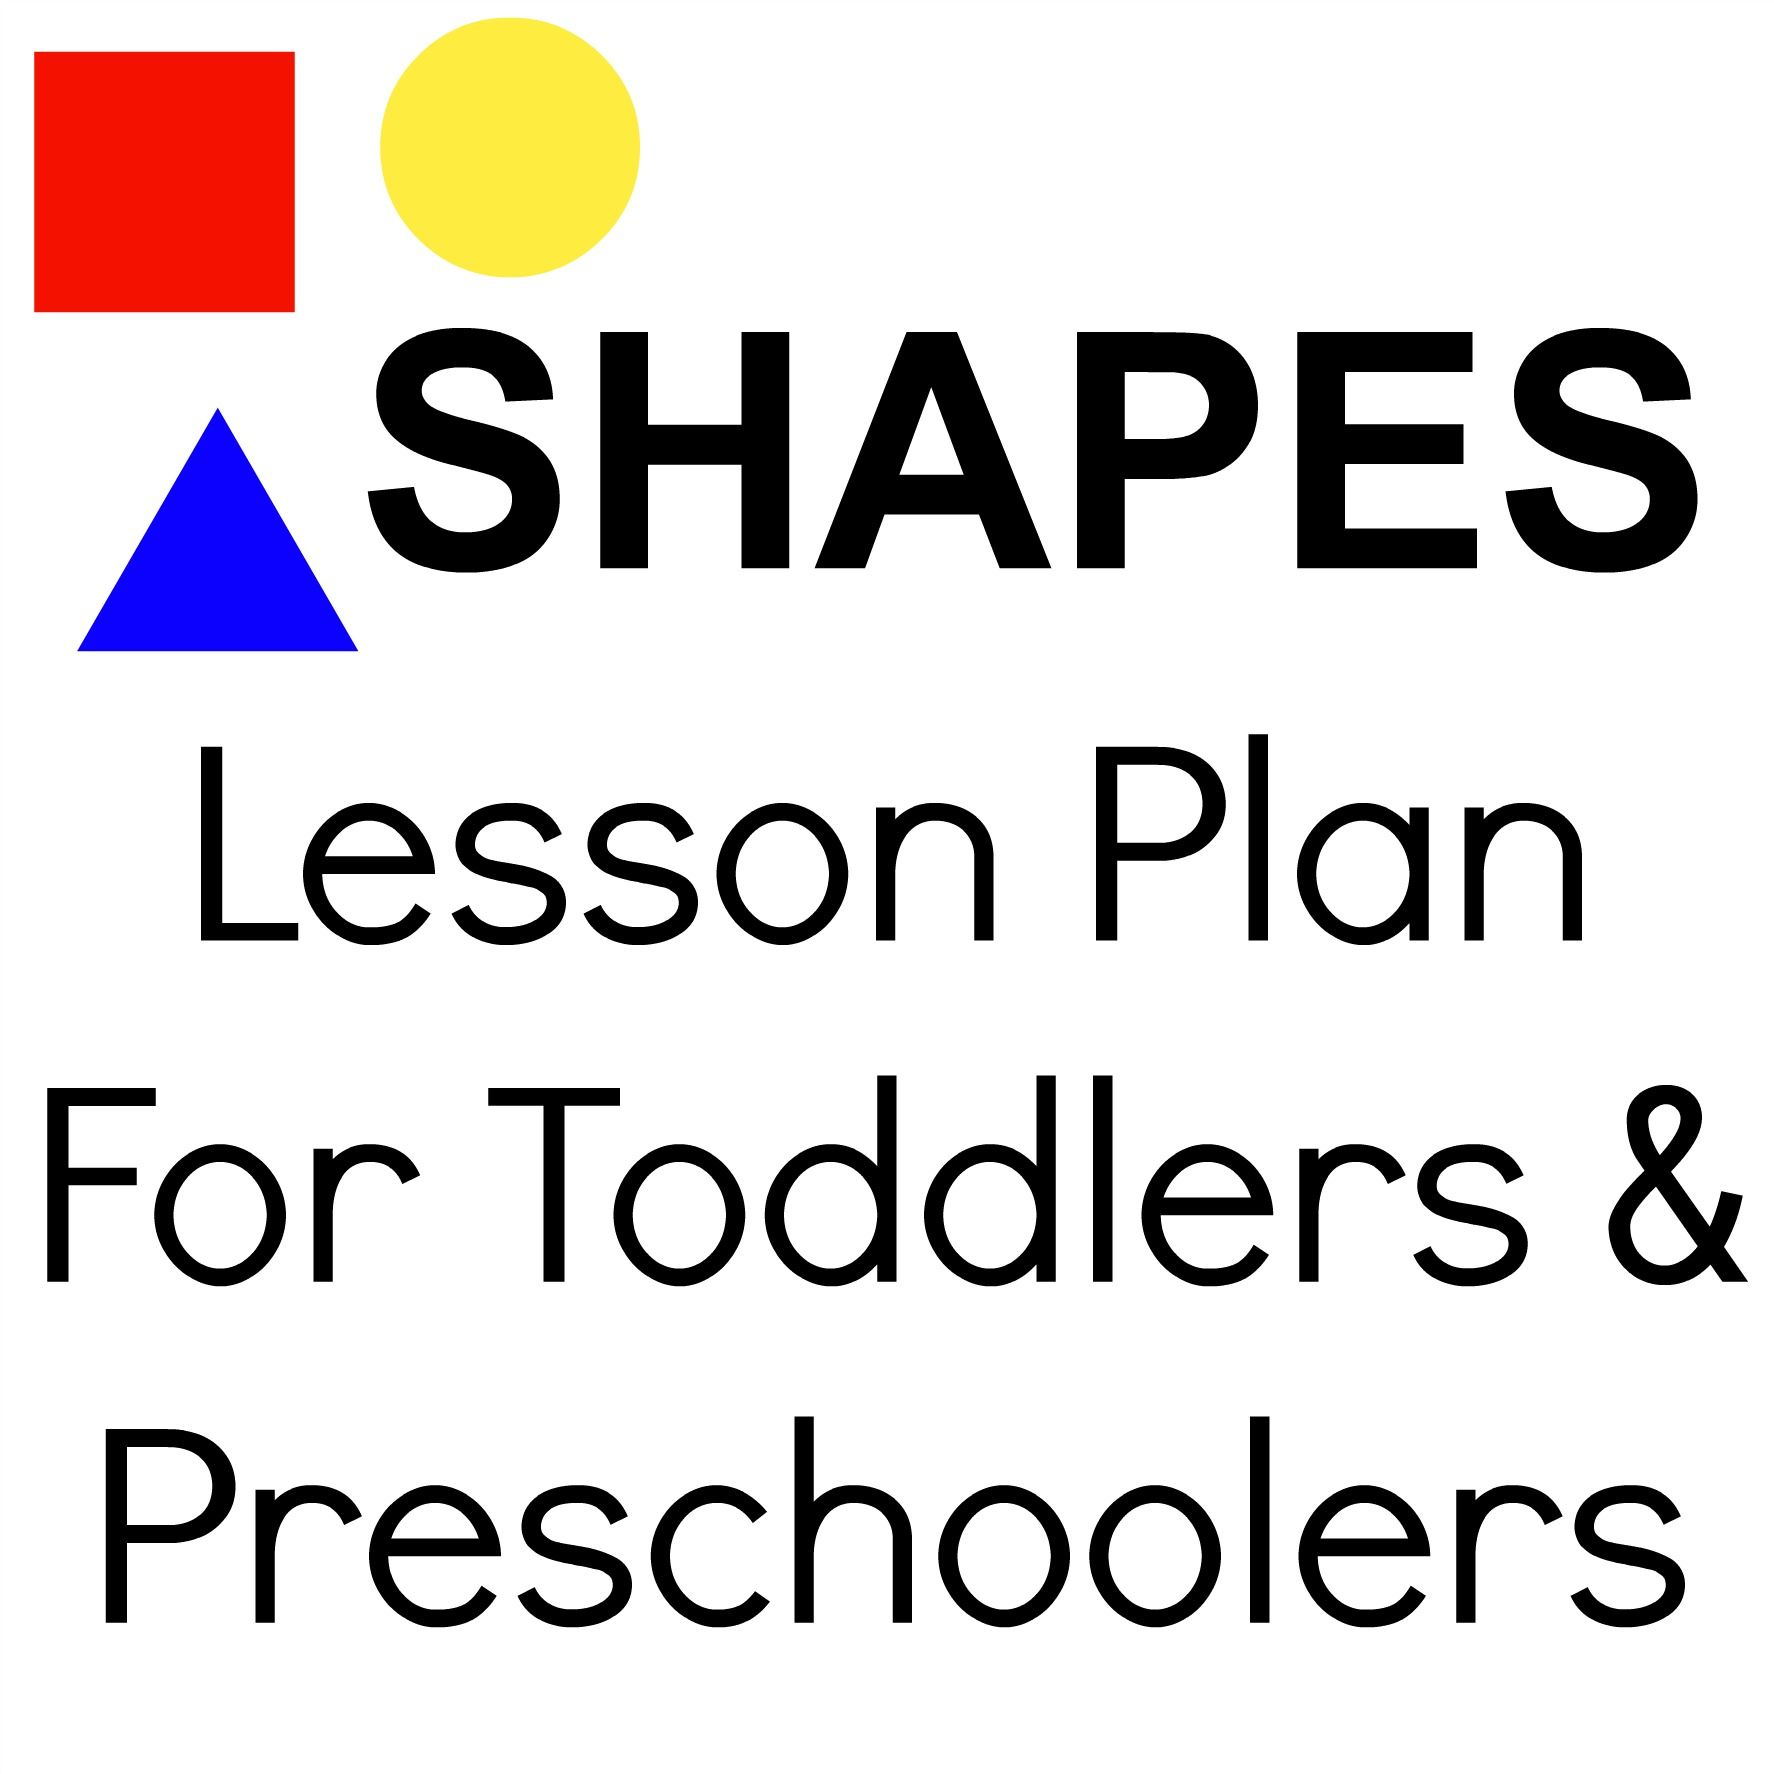 Shapes Lesson Plan For Toddlers Amp Preschoolers Repinned By Sos Inc Resources Pinterest